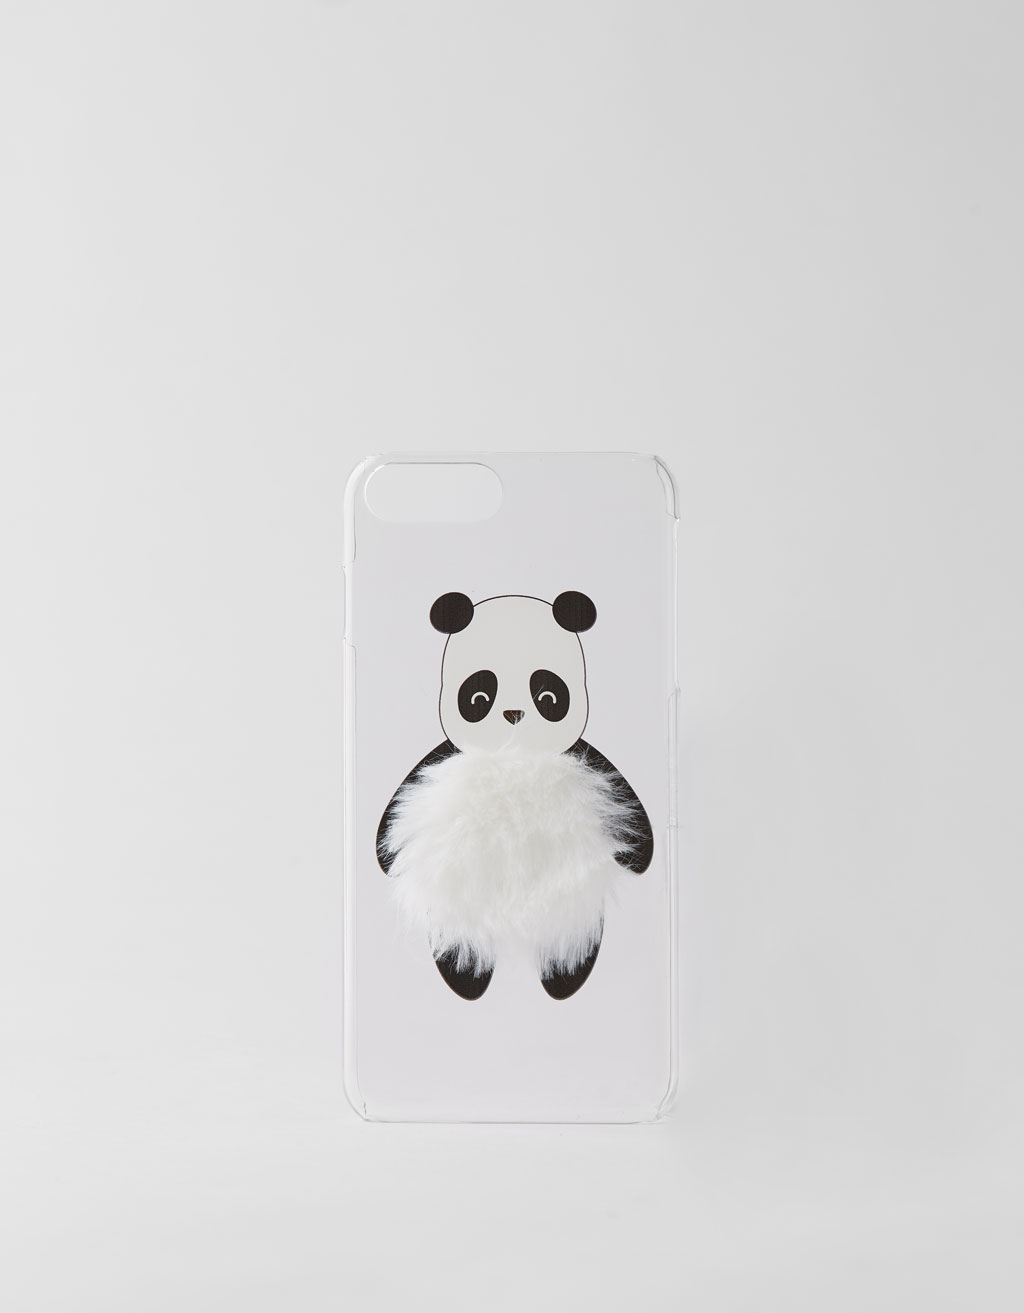 Θήκη Panda iPhone 6 plus / 7 plus / 8 plus